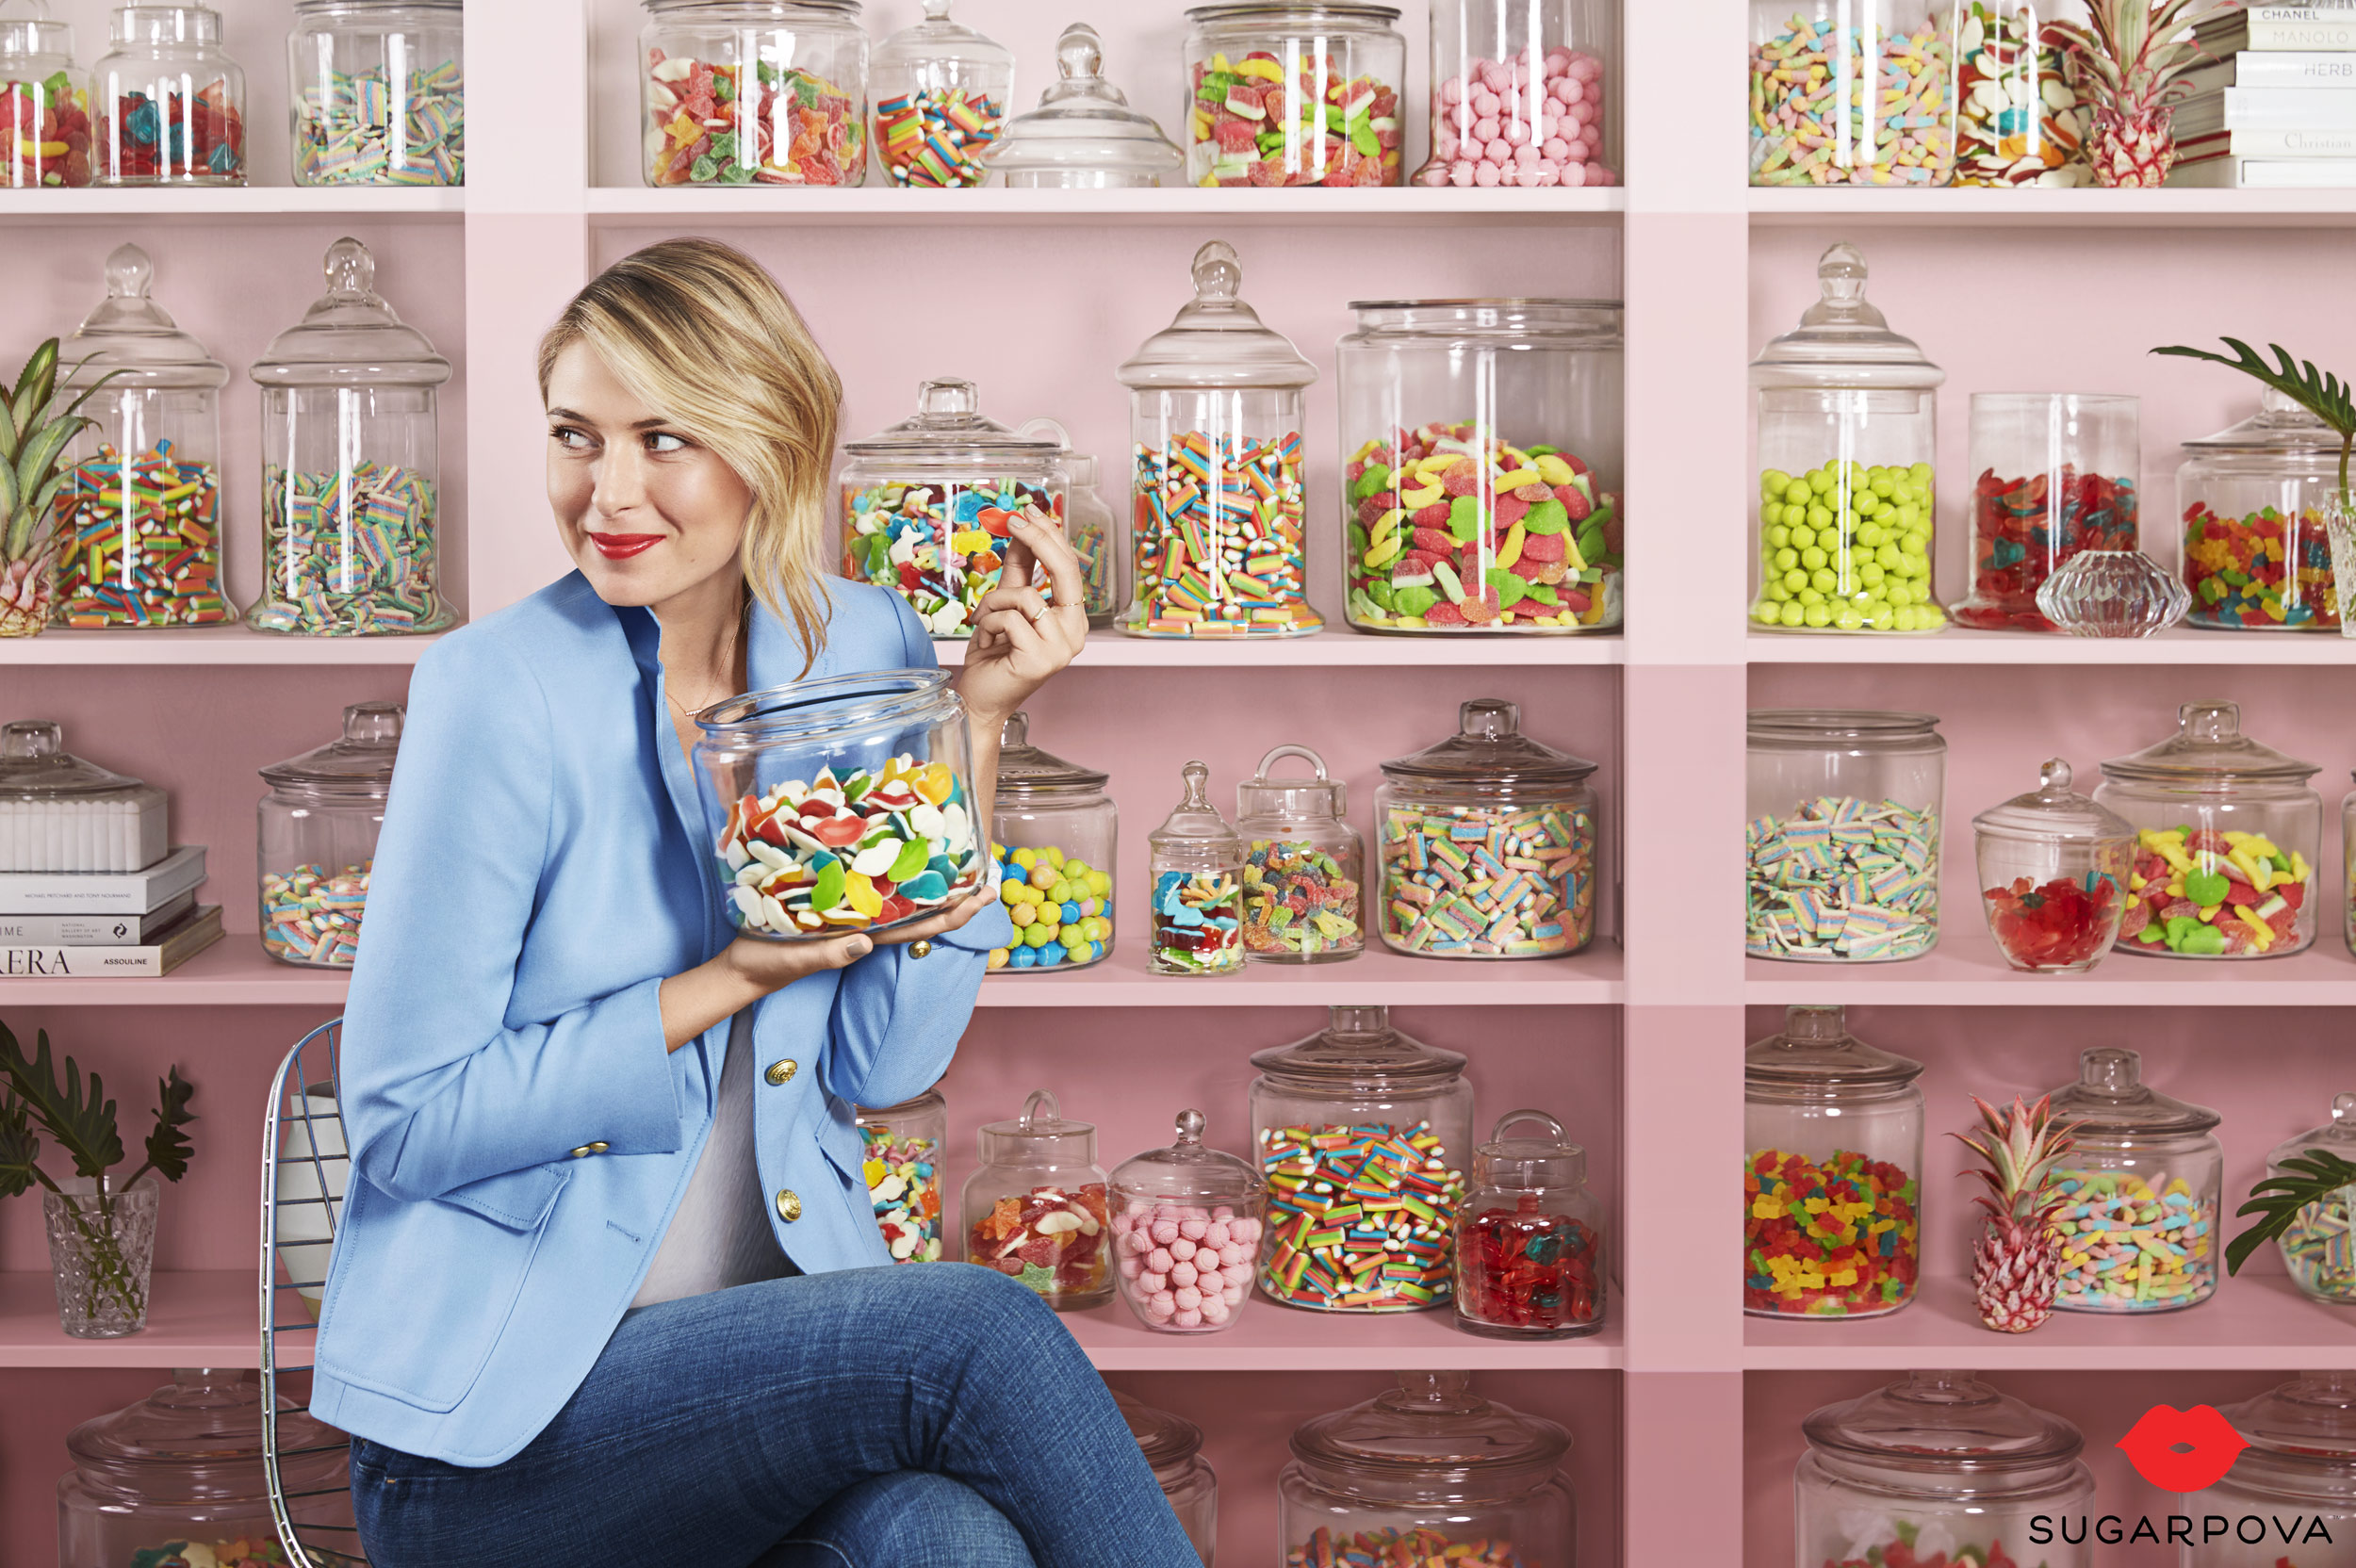 Maria Sharapova holding a jar of candy for Sugarpova - Kimberly Genevieve Los Angeles Lifestyle Advertising Photographer